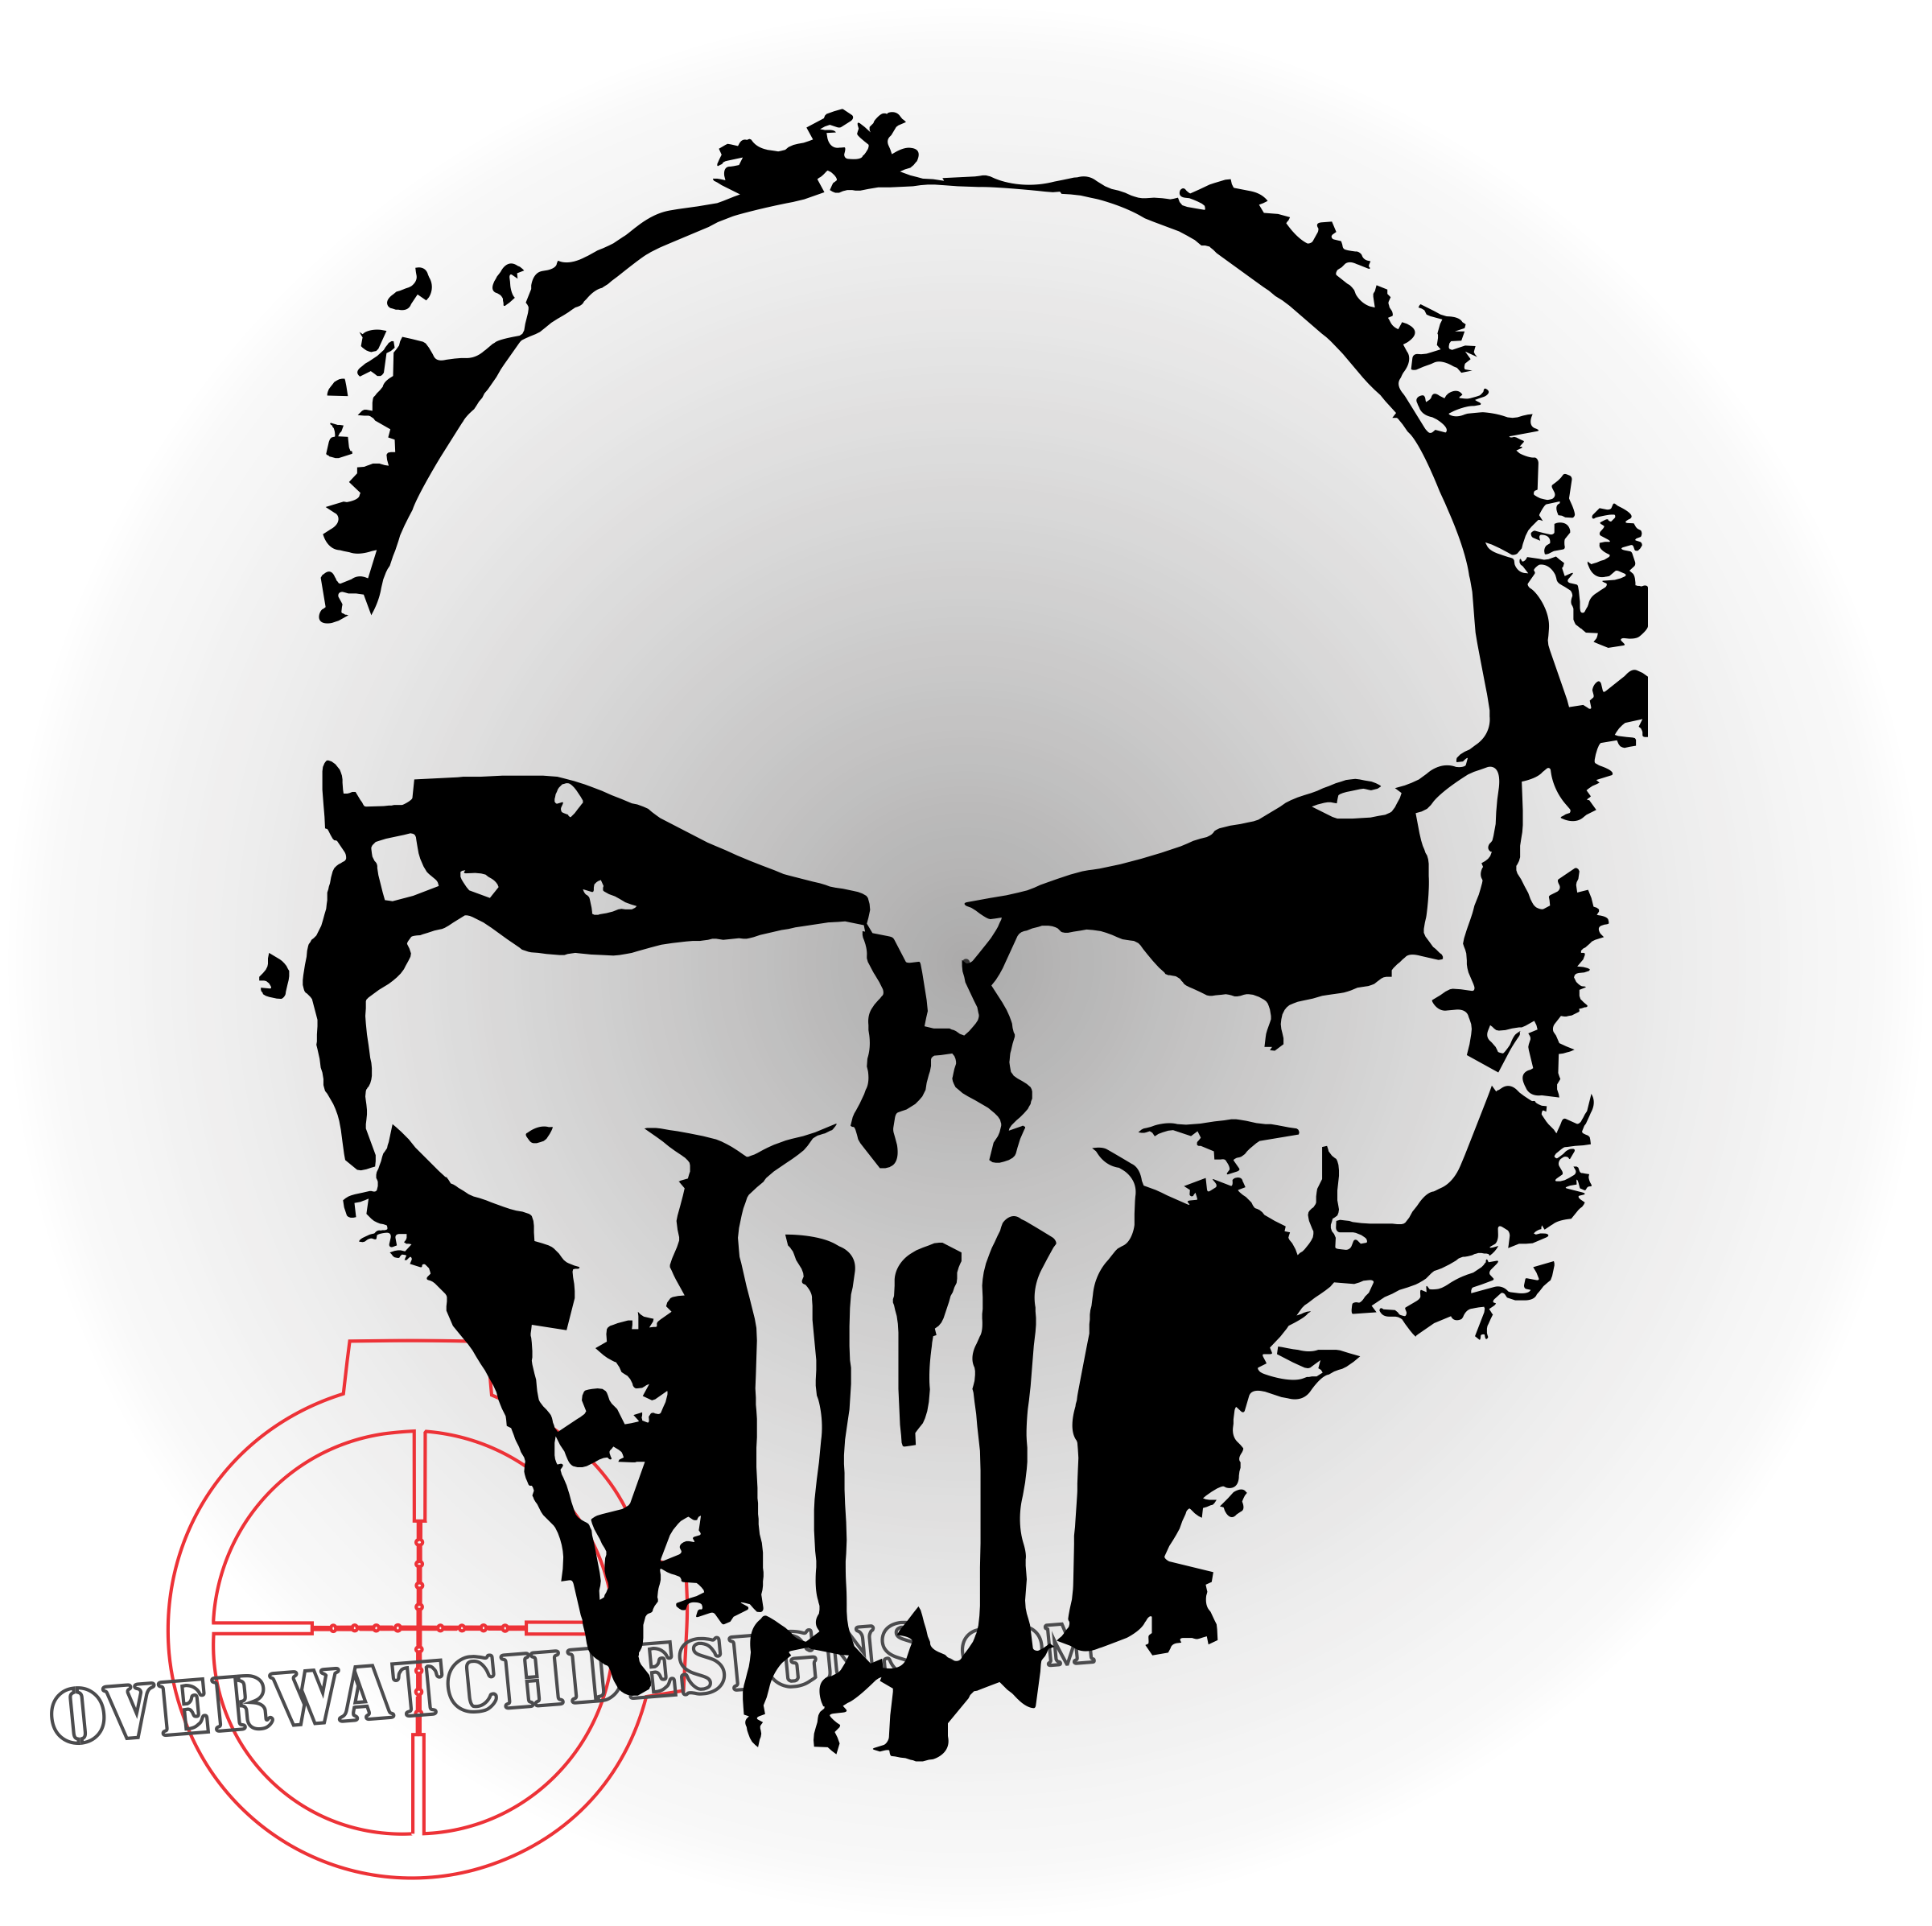 Punisher skull png. Spray paint edition overwatch